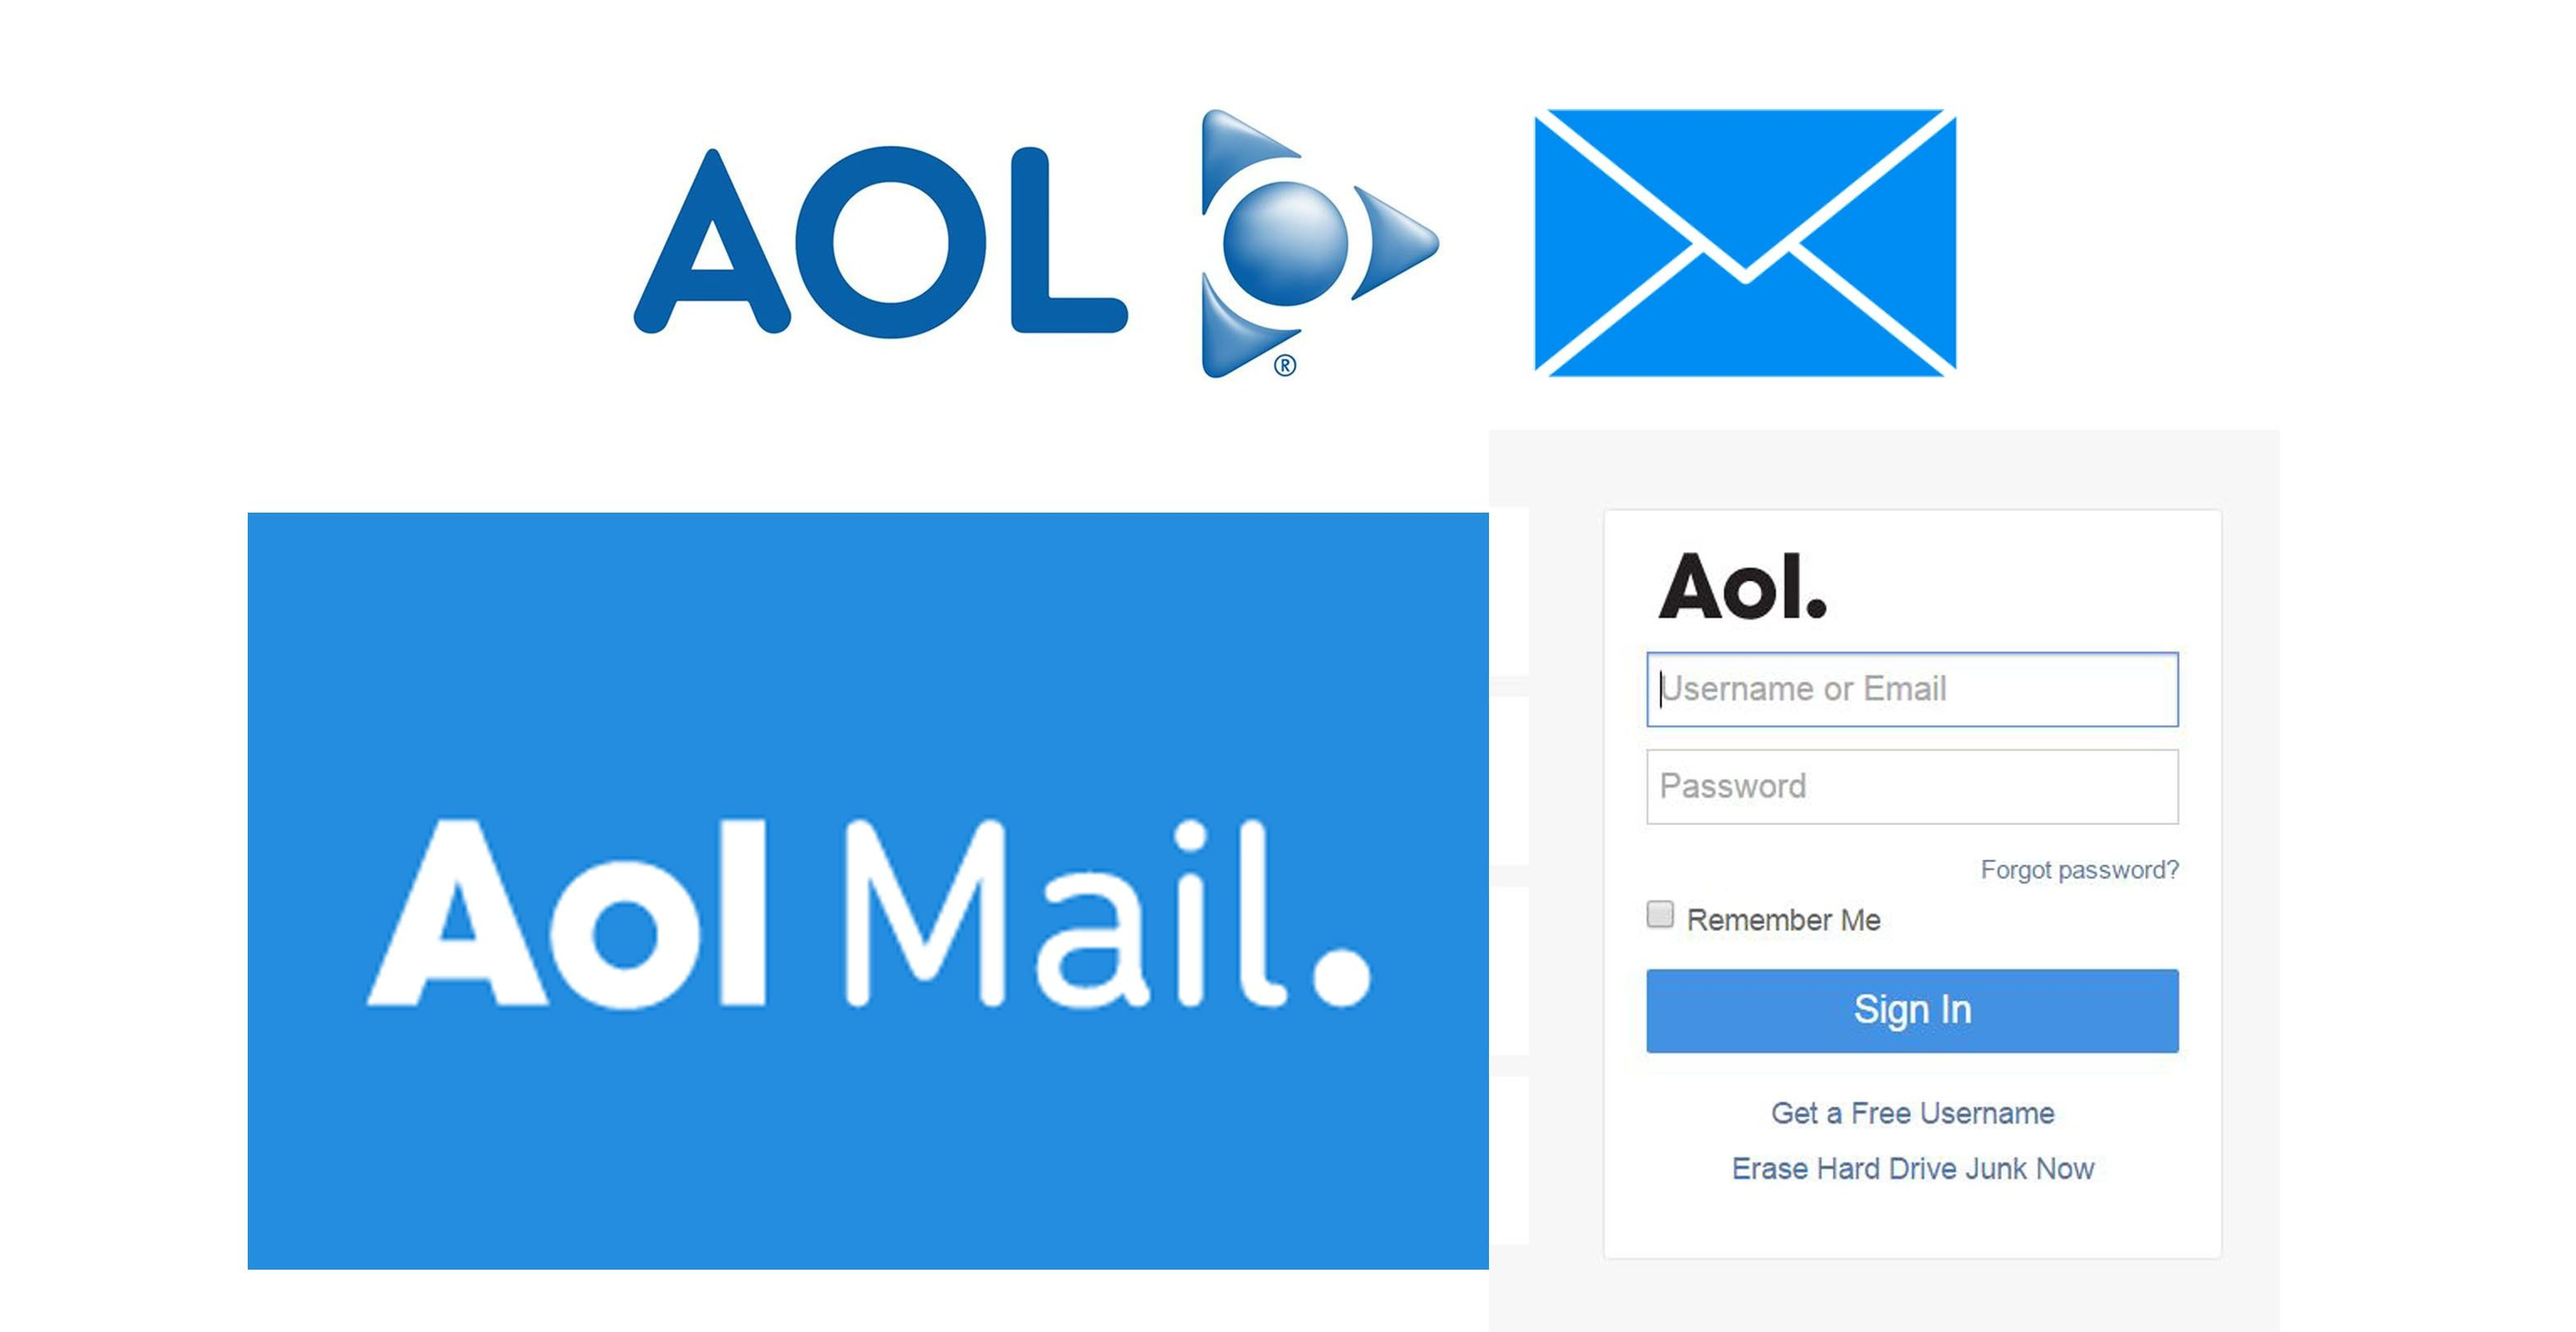 AOL Mail is one of the oldest and most successful free web